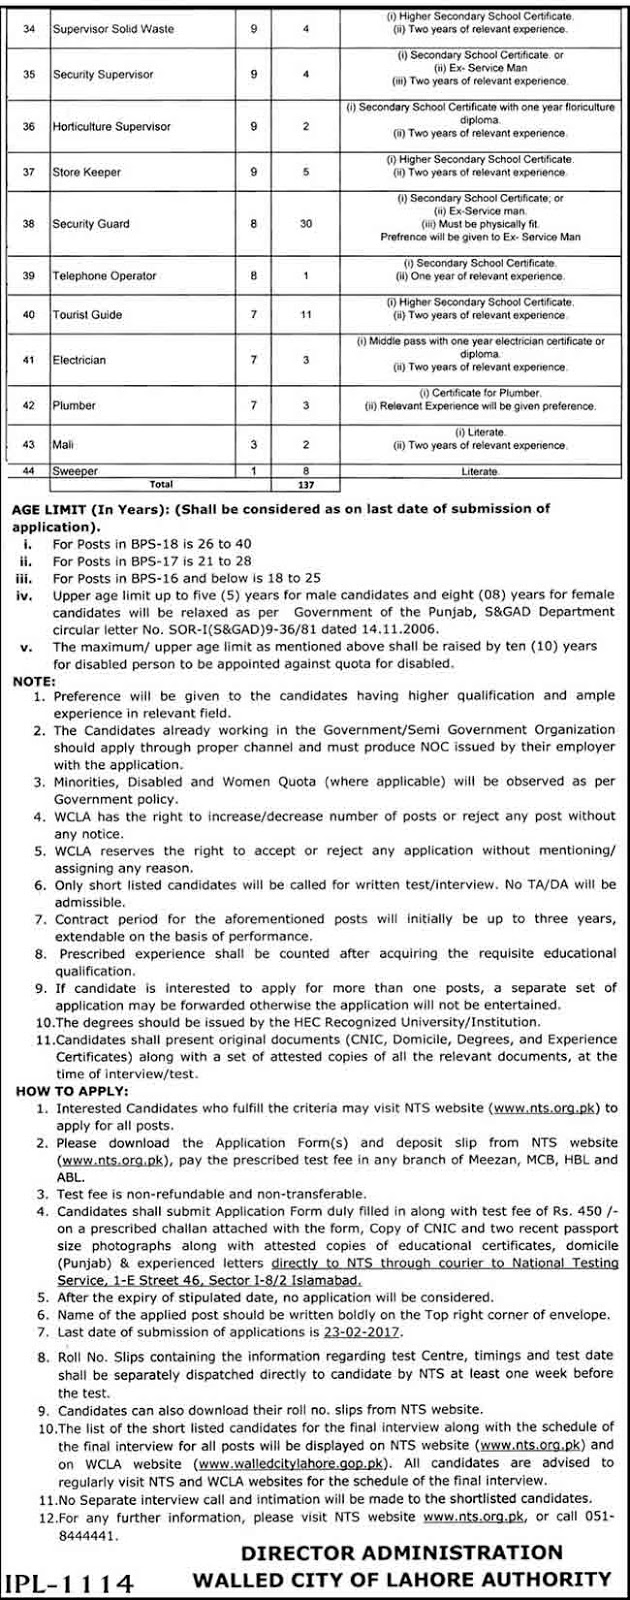 Walled City Authority 137+Jobs Of Lahore 6th February 2017